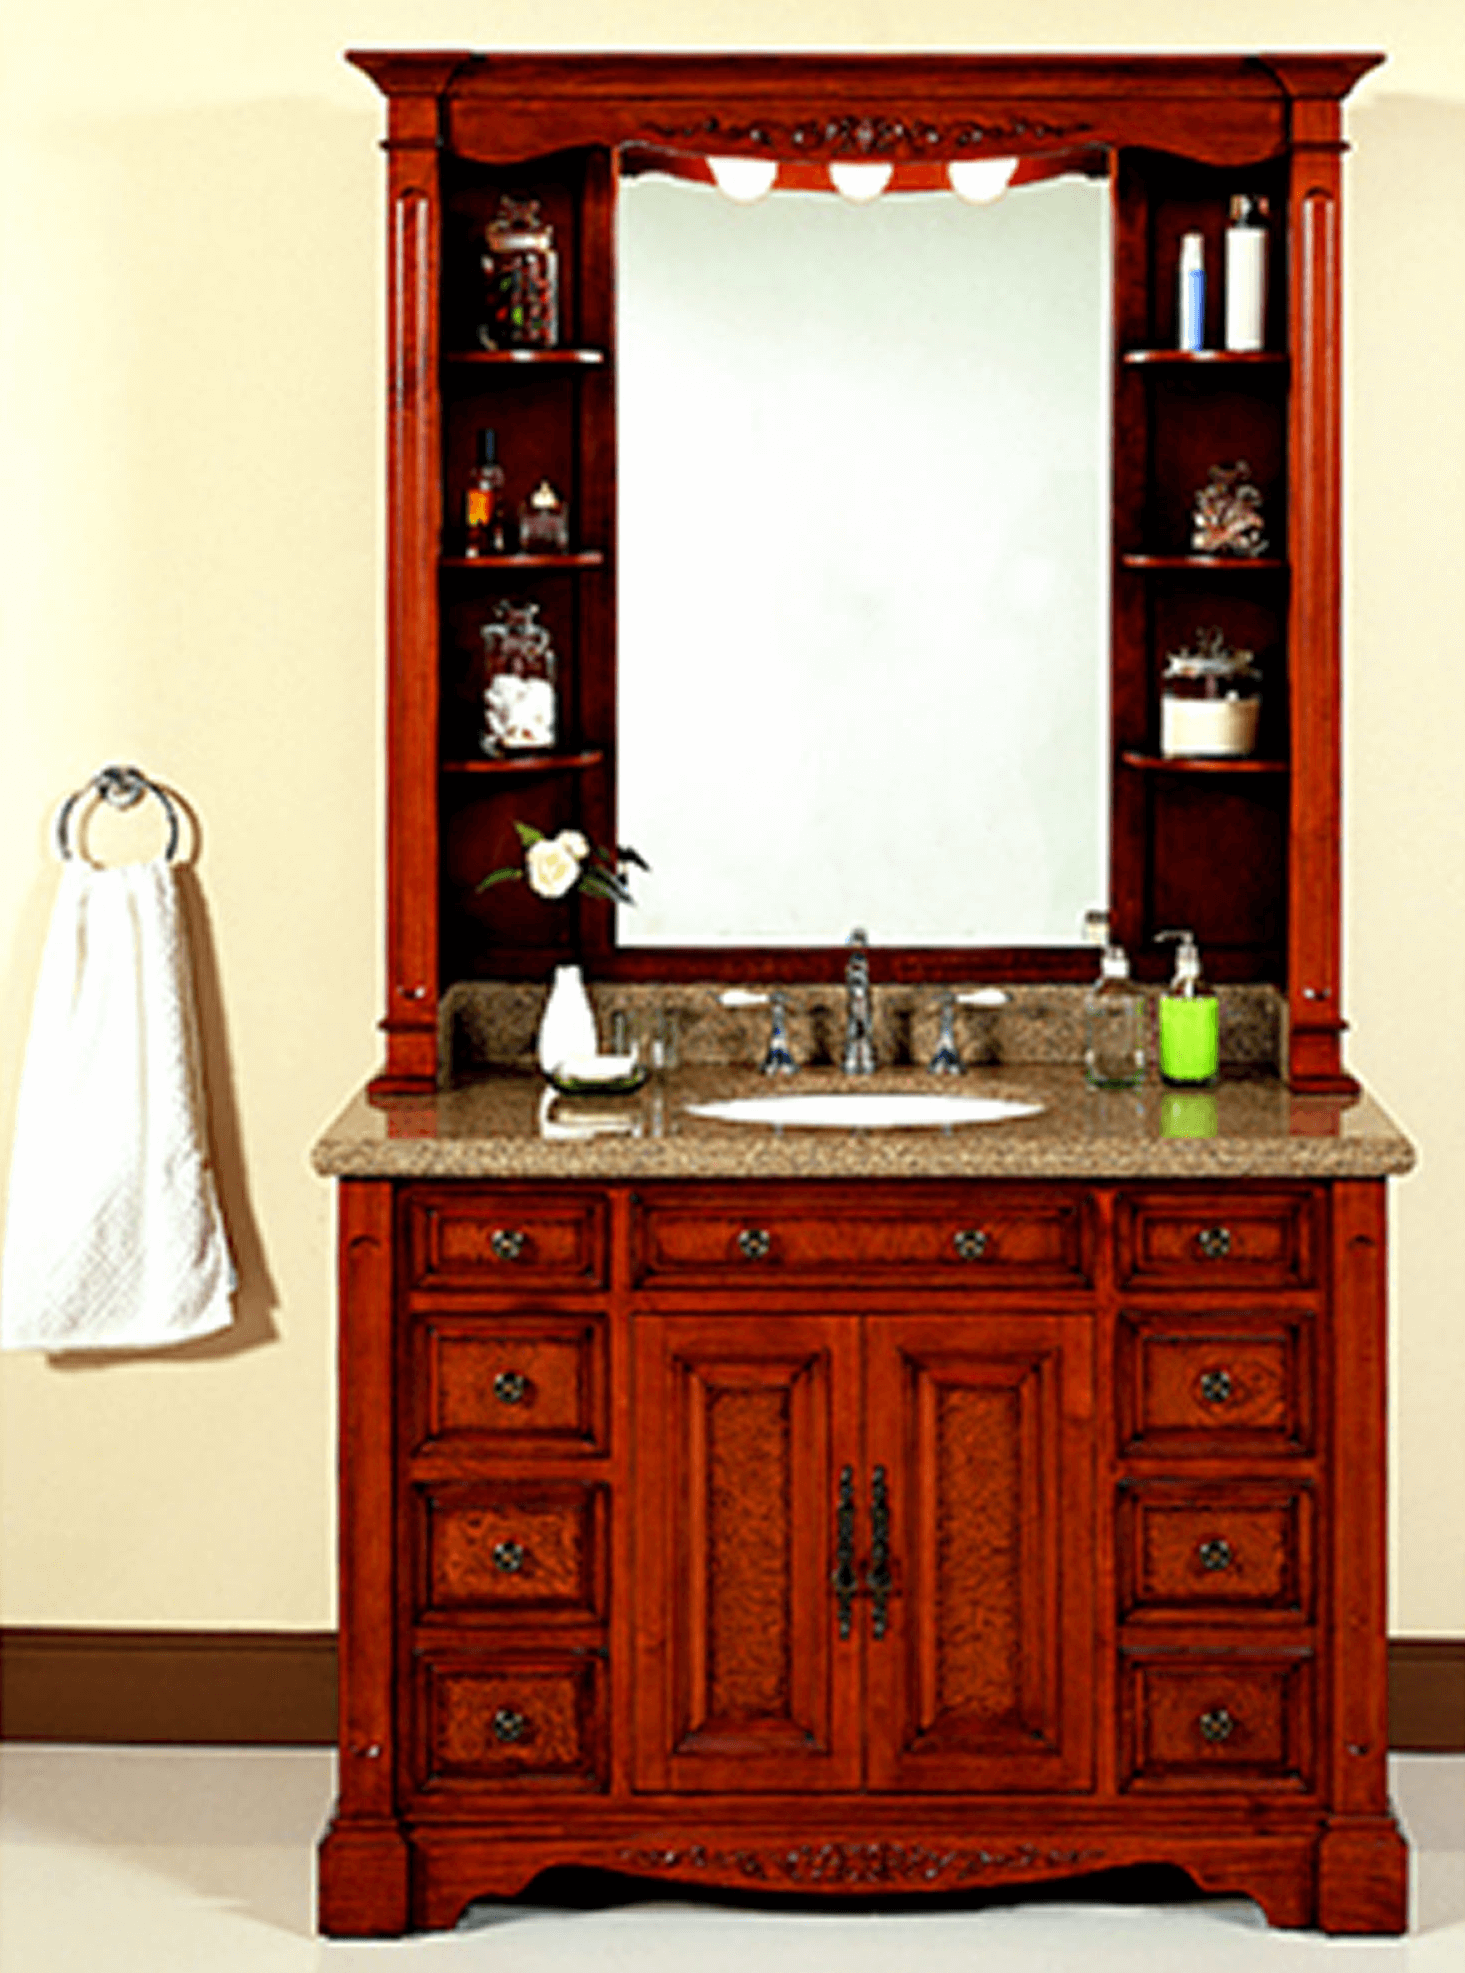 Lanza single-sink bathroom vanity with granite countertop and hutch